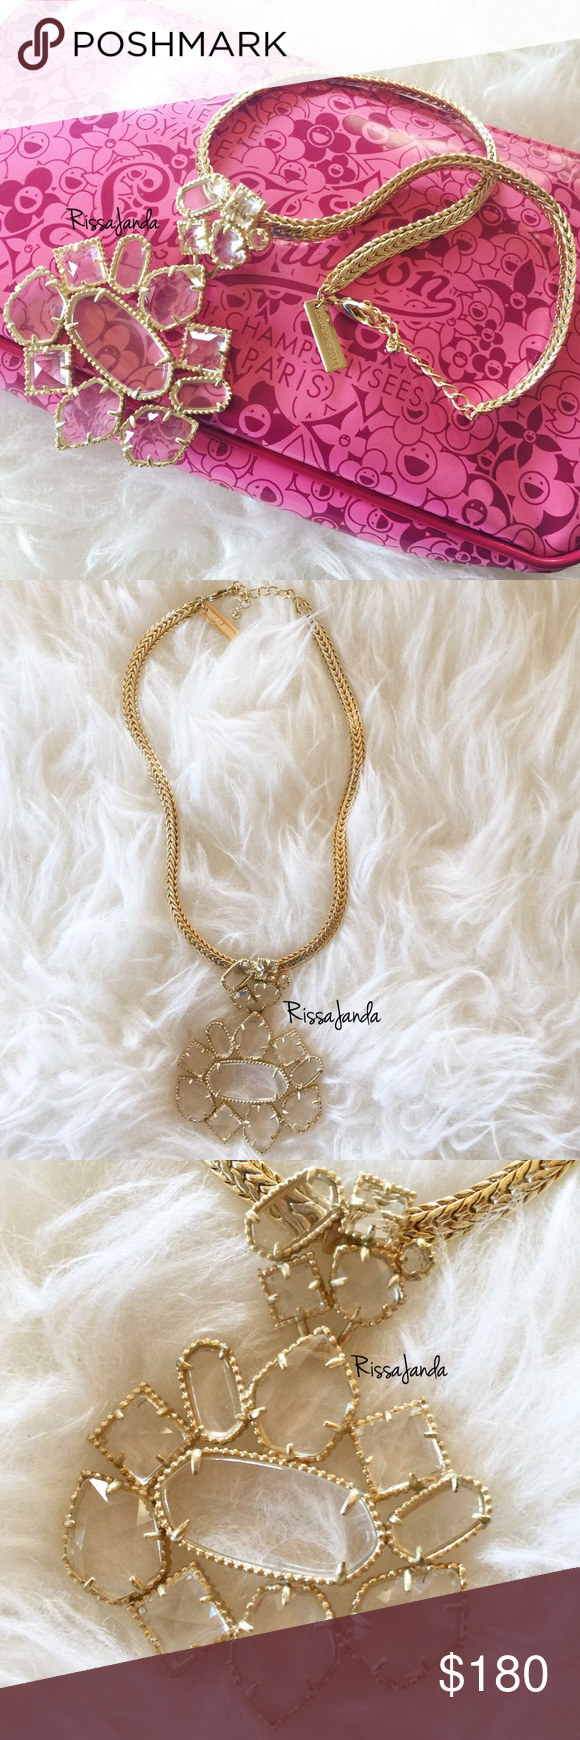 """Kendra Scott Blakely in Clear Never worn! New without tags Retired Blakely Pendant Necklace • 14K Gold Plated Over Brass • Size: 3.31""""L x 2.44""""W pendant, 16"""" chain with 2"""" extender • Material: crystal clear glass Kendra Scott Jewelry Necklaces"""